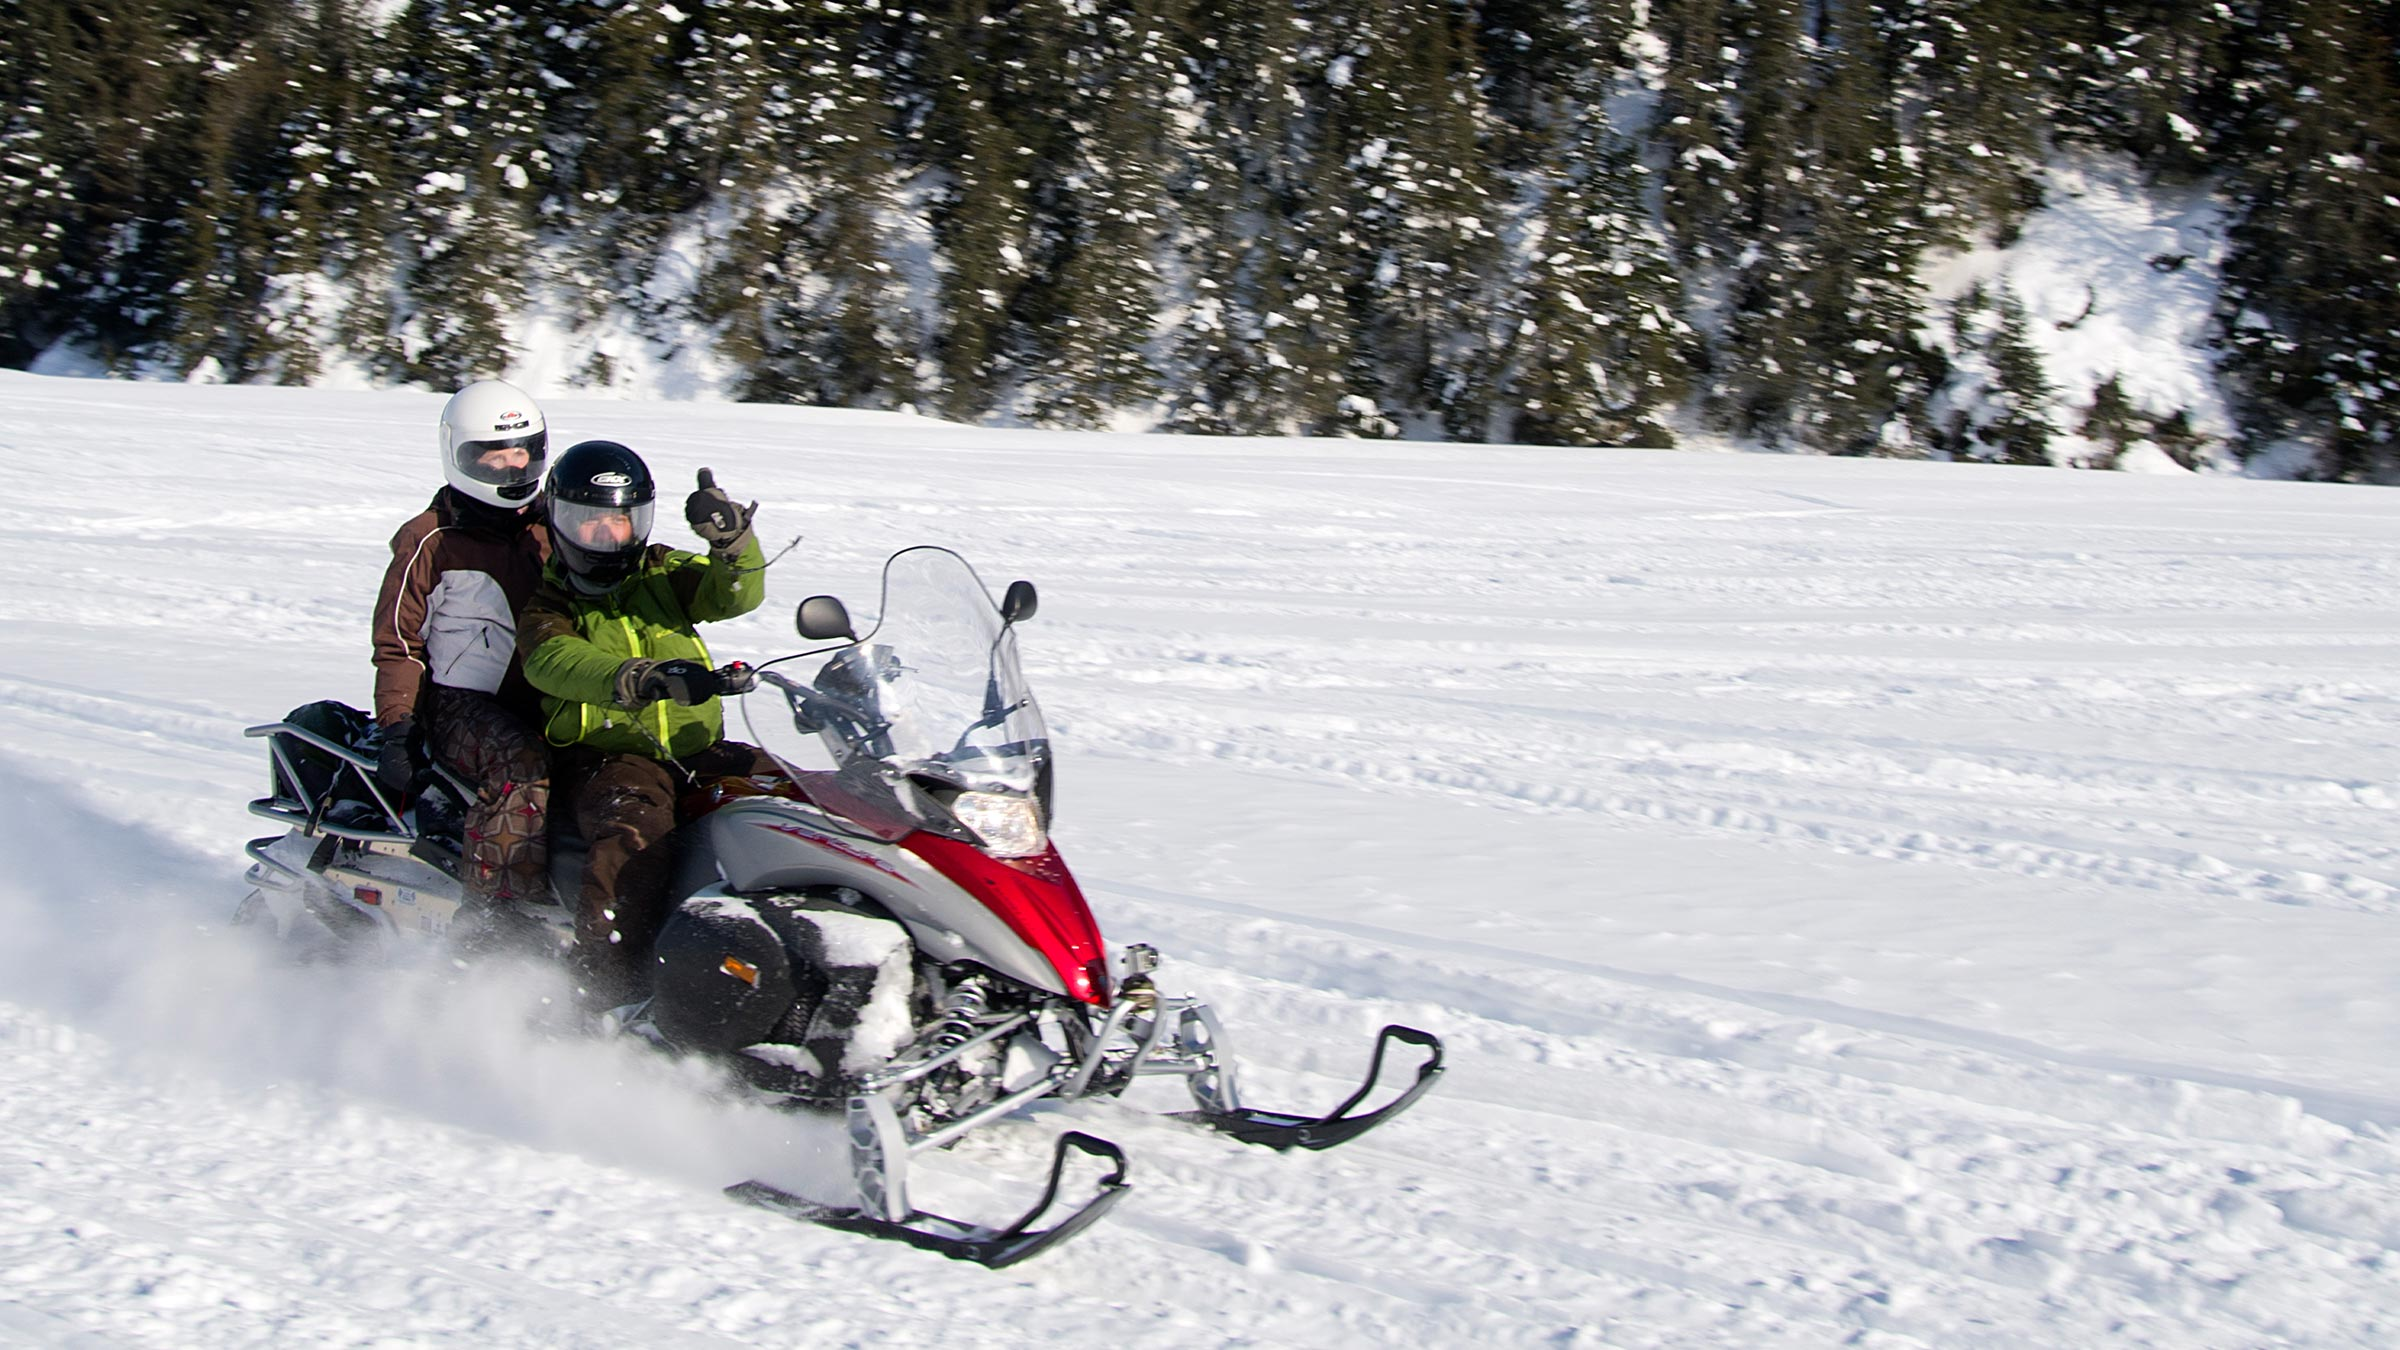 Two people ride on a snow mobile